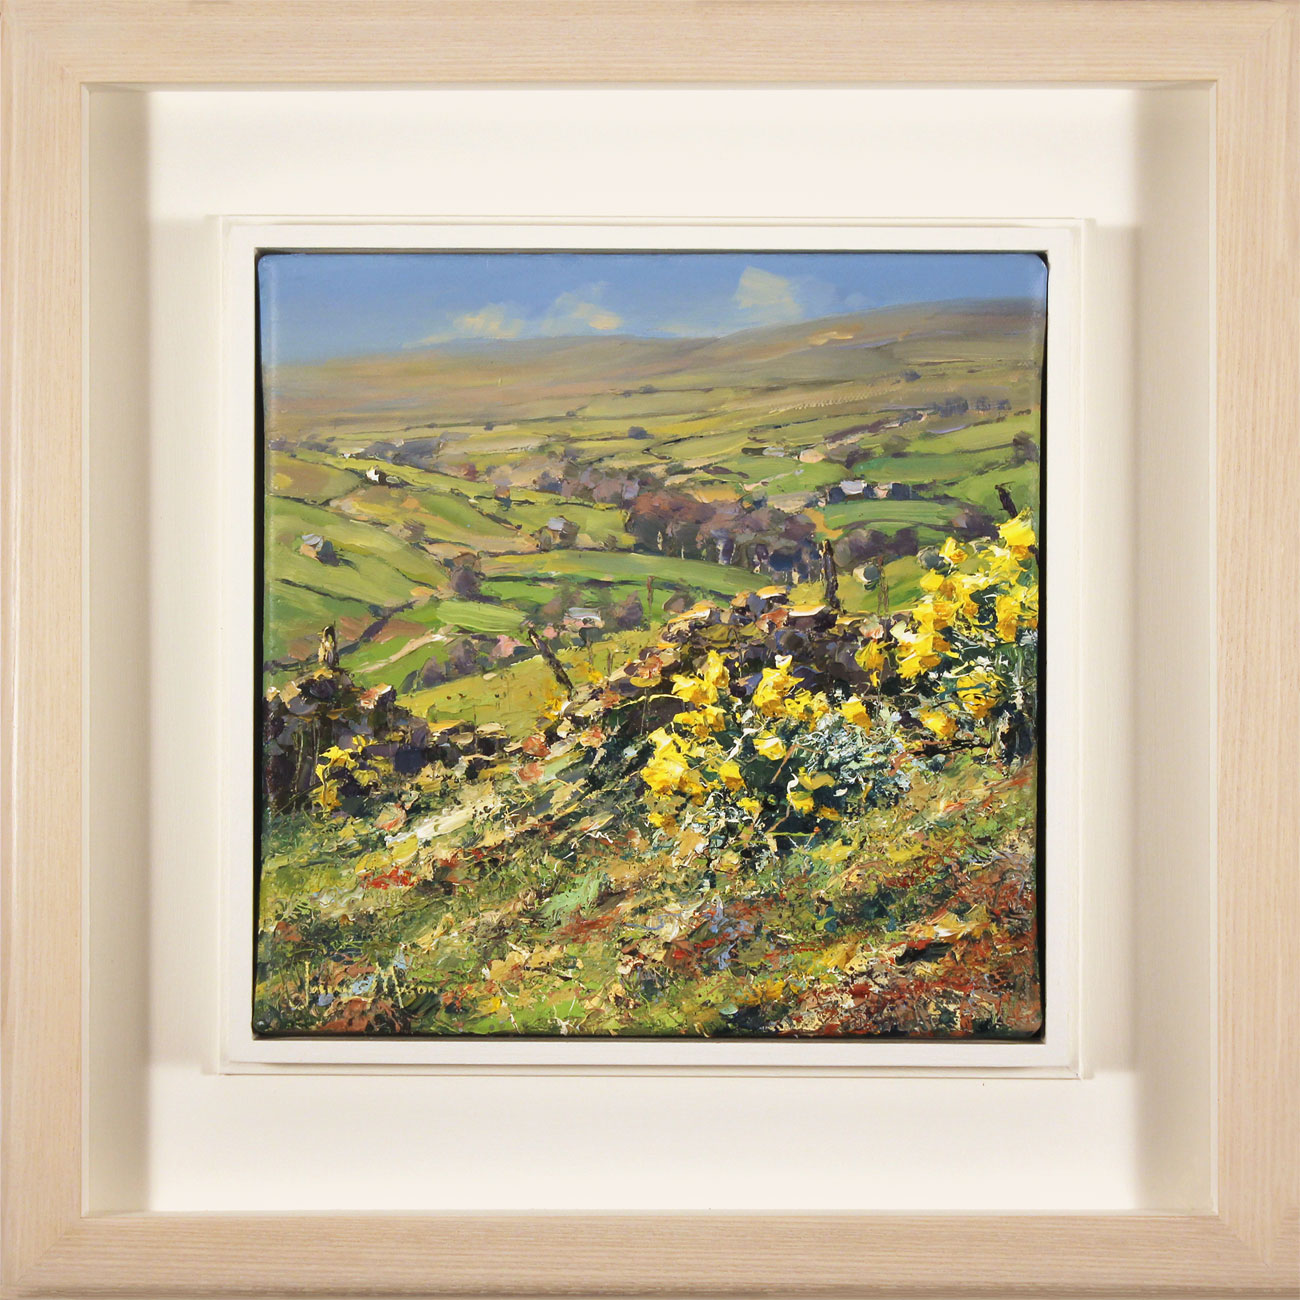 Julian Mason, Original oil painting on canvas, Spring, Middlesmoor Click to enlarge